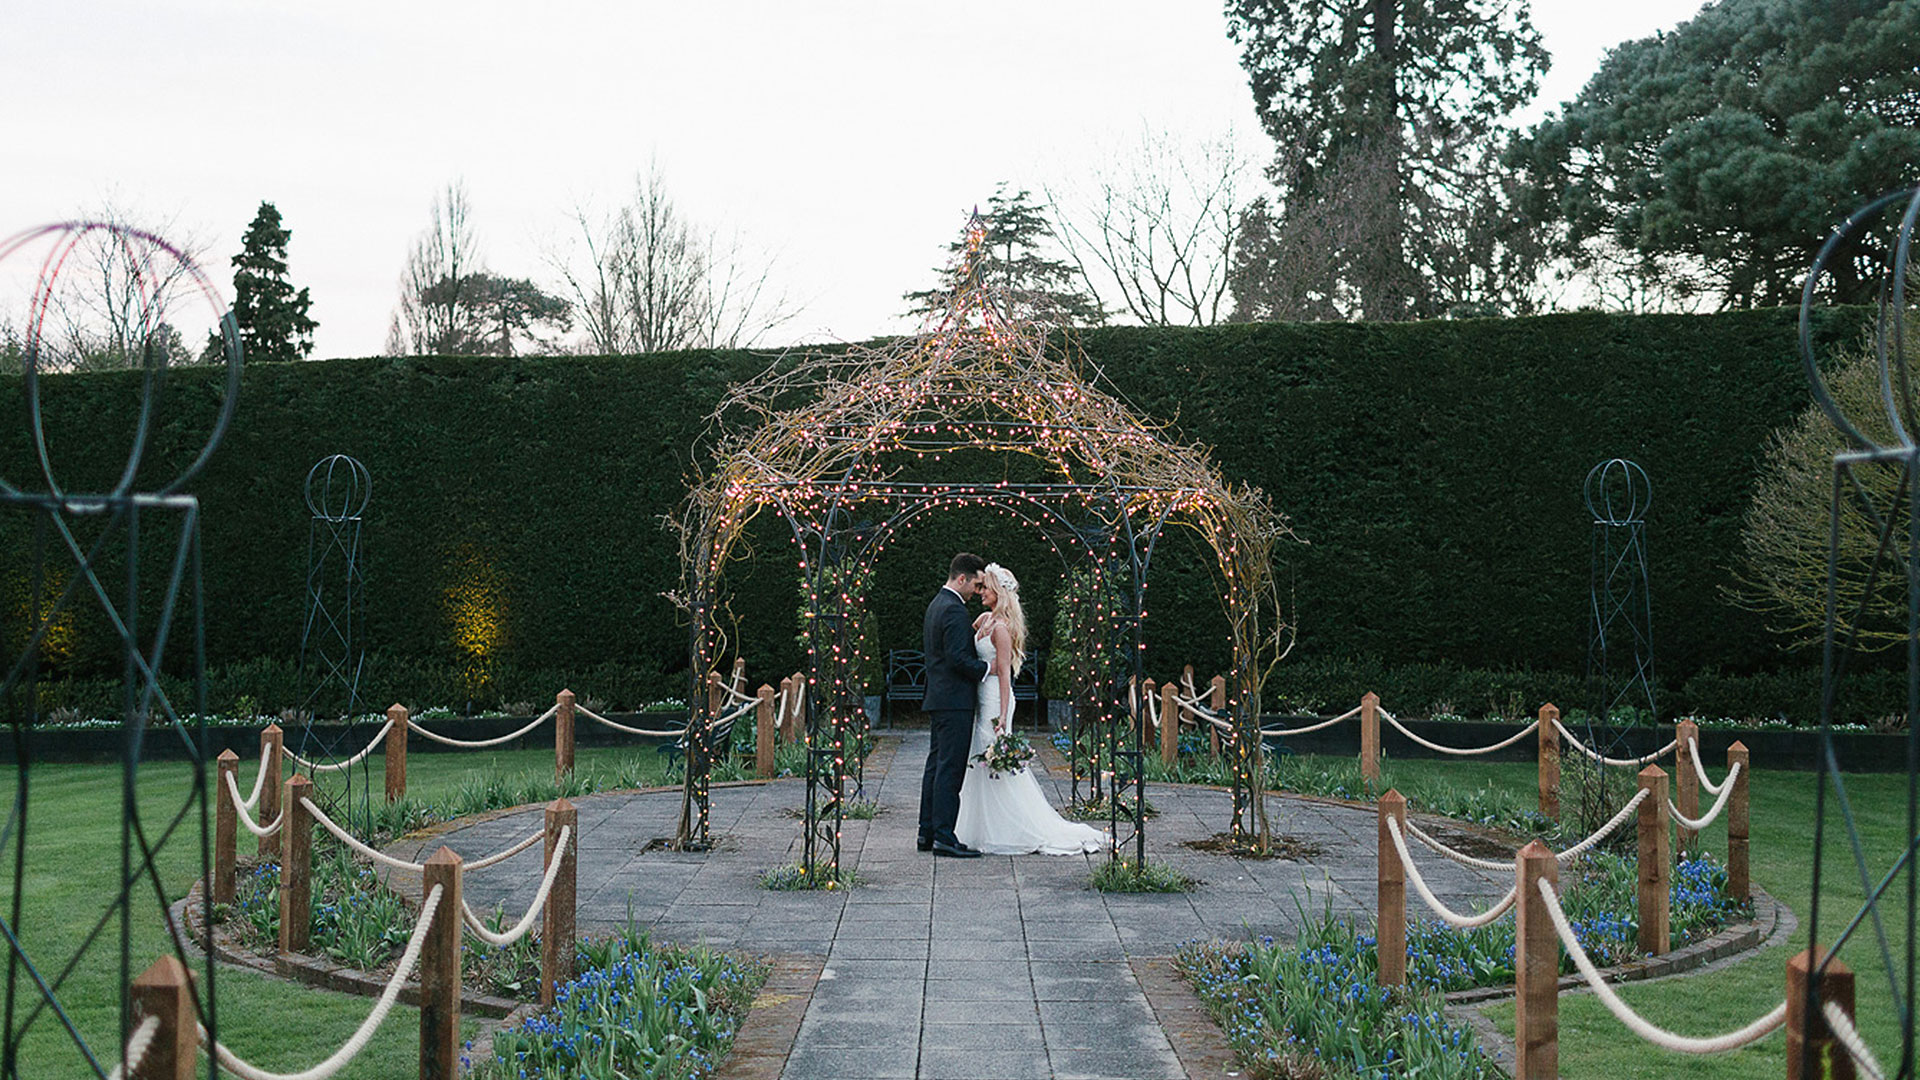 The romantically lit garden structure is a wonderful addition to your wedding photos - wedding ideas